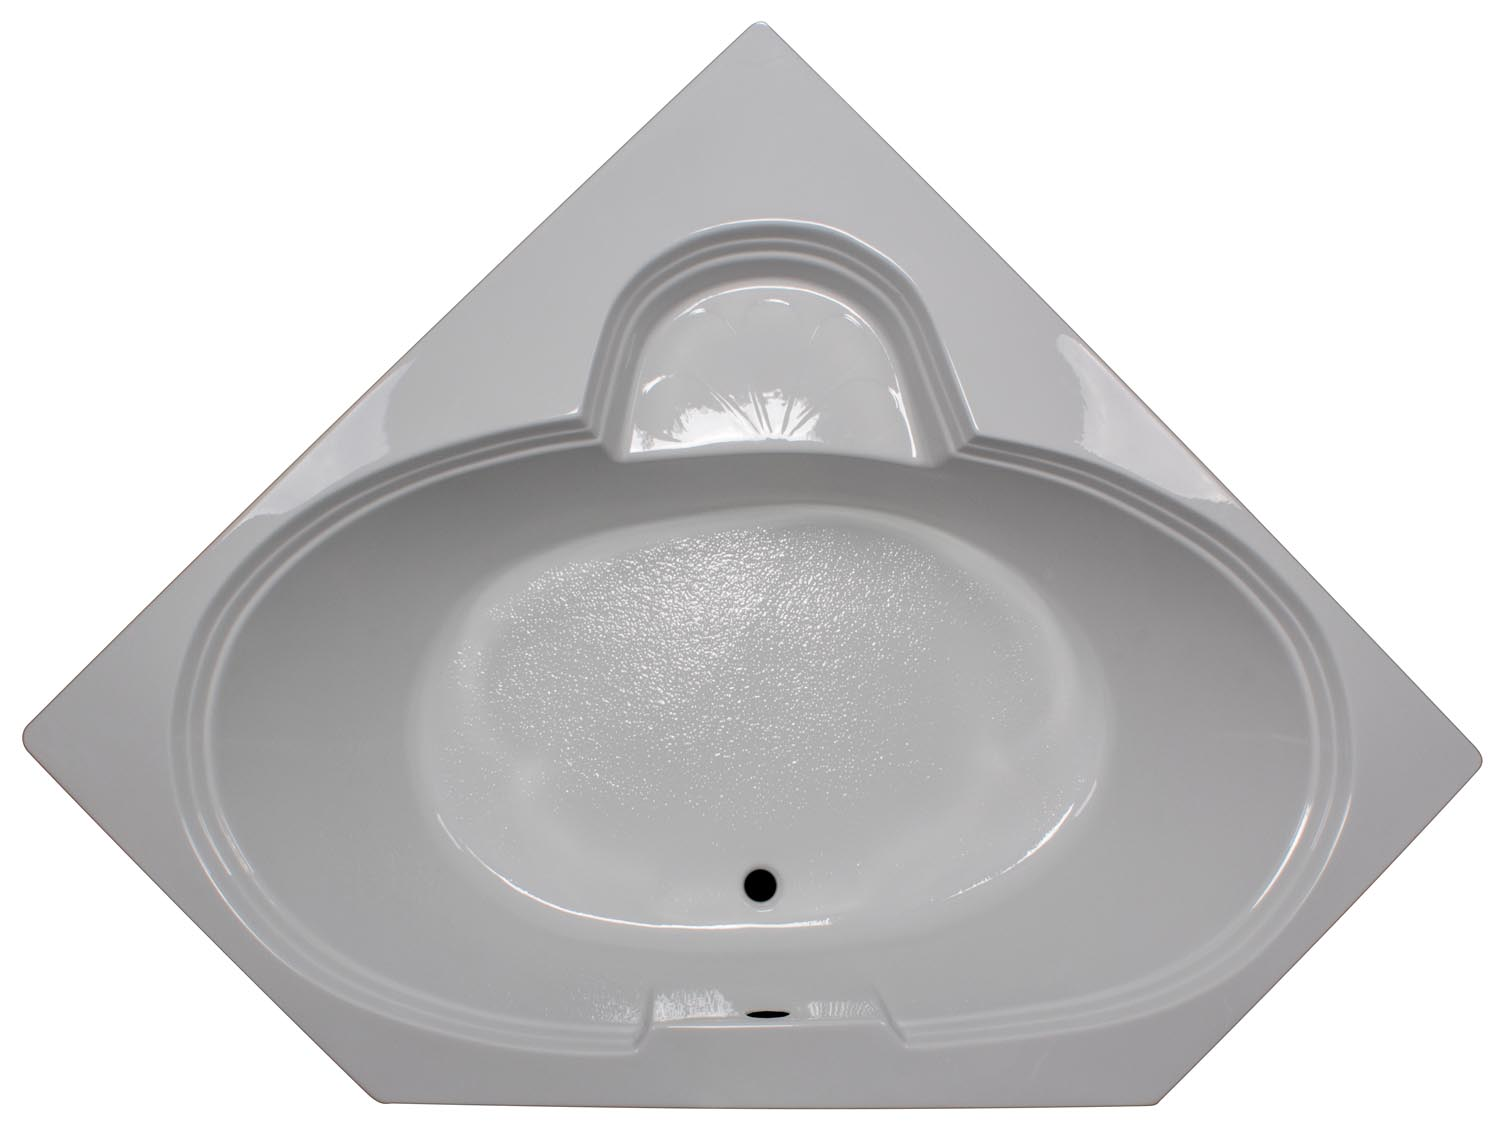 60×60 Oval Corner Bathtub With Seat BR 58